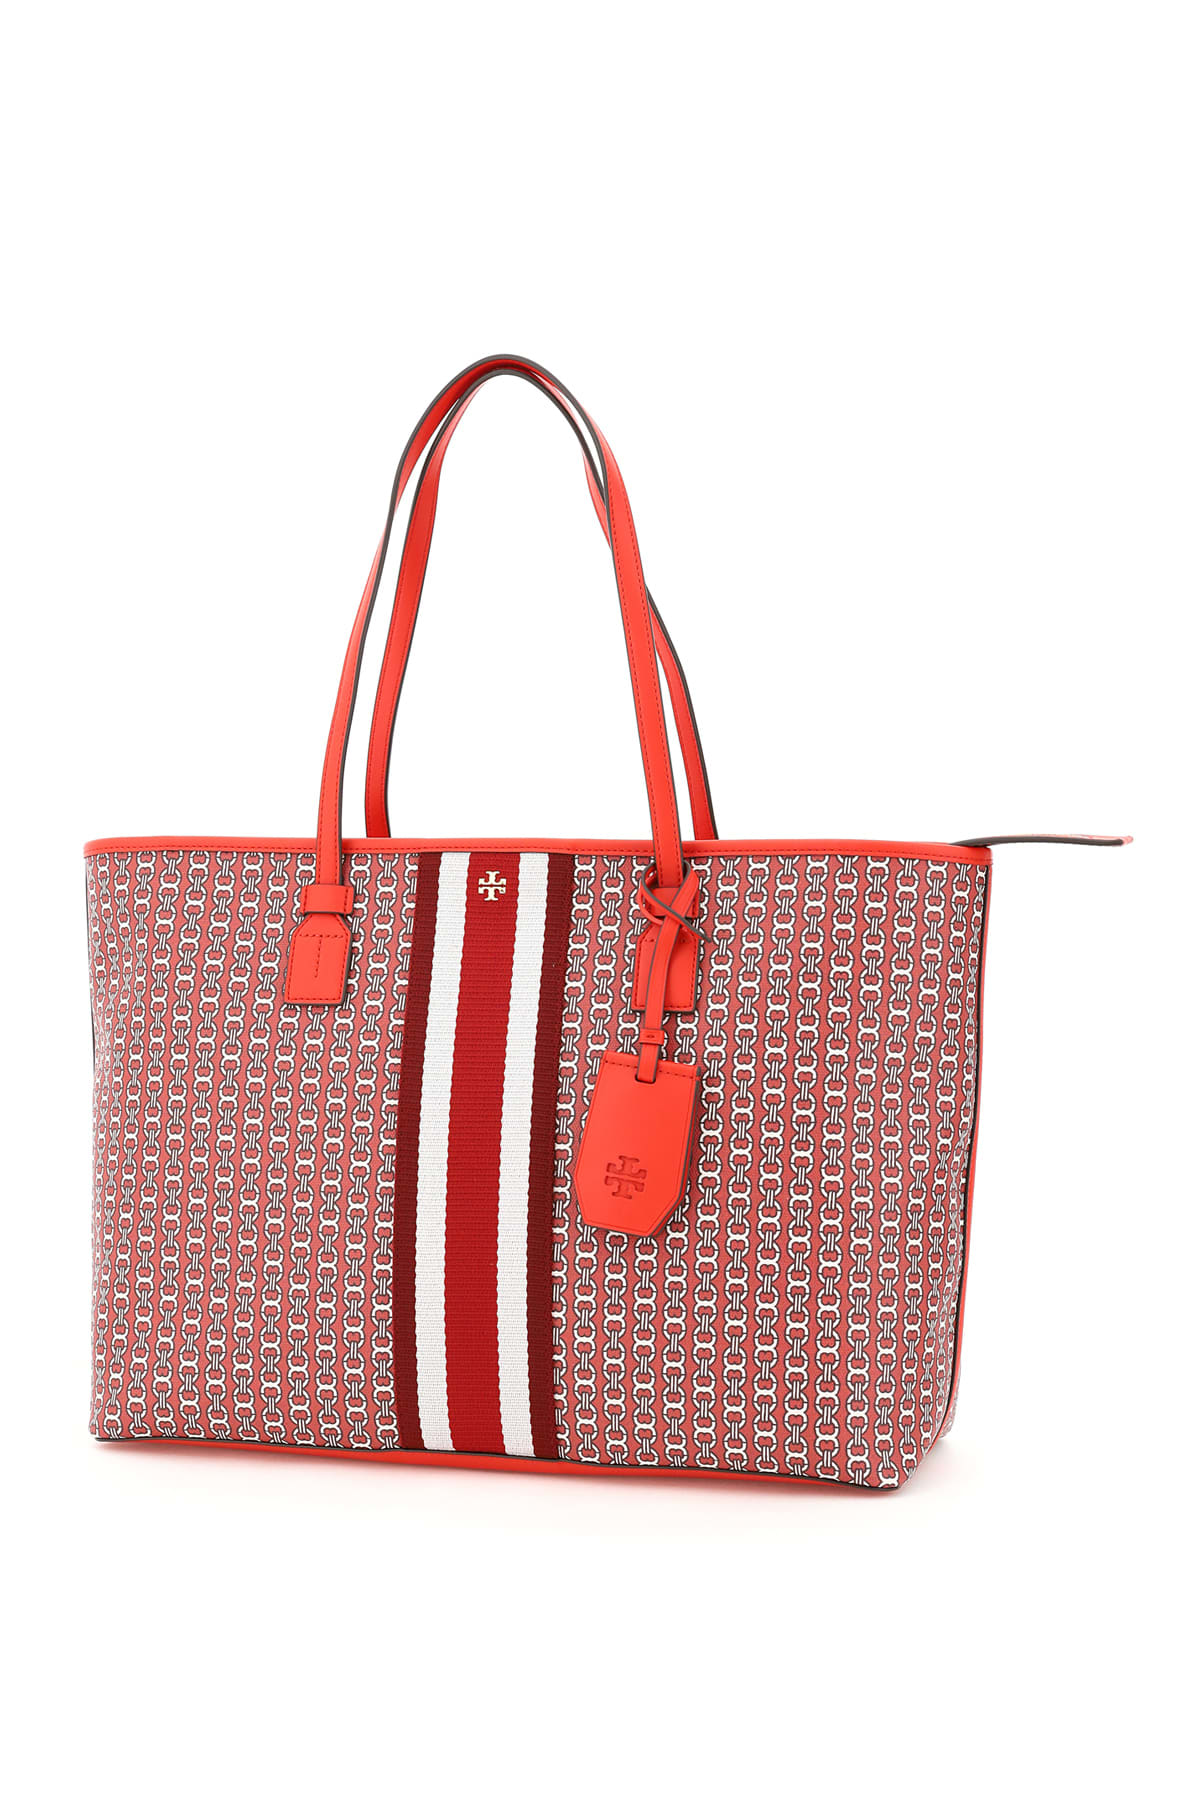 Tory Burch Gemini Link Large Tote Bag